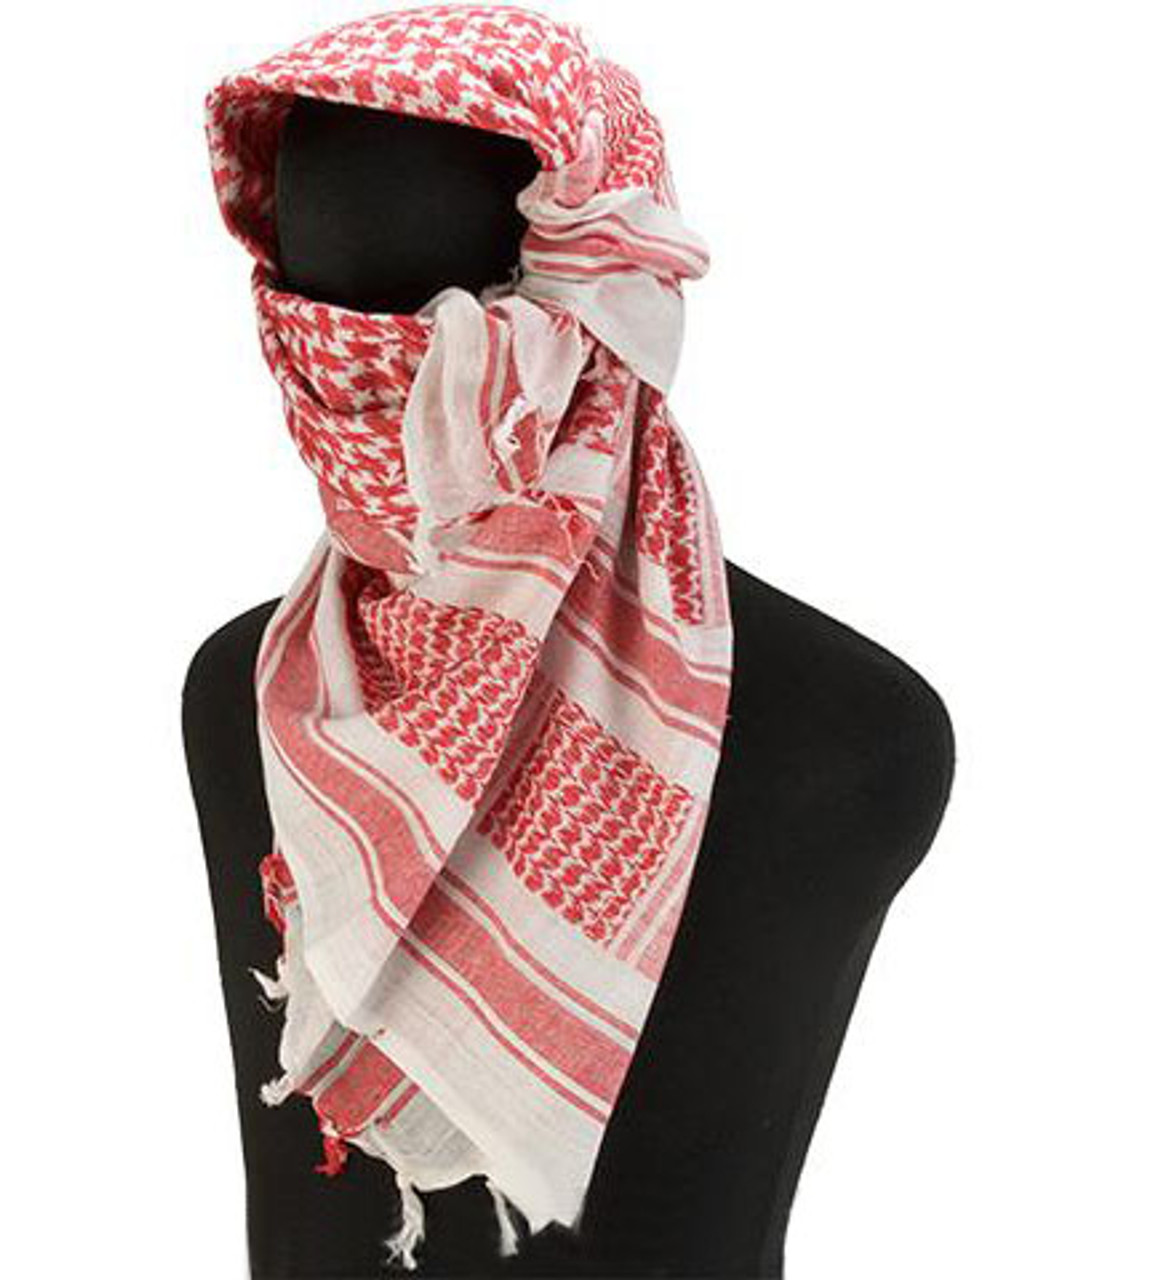 Matrix Woven Coalition Desert Shemagh / Scarves - Red / White ...